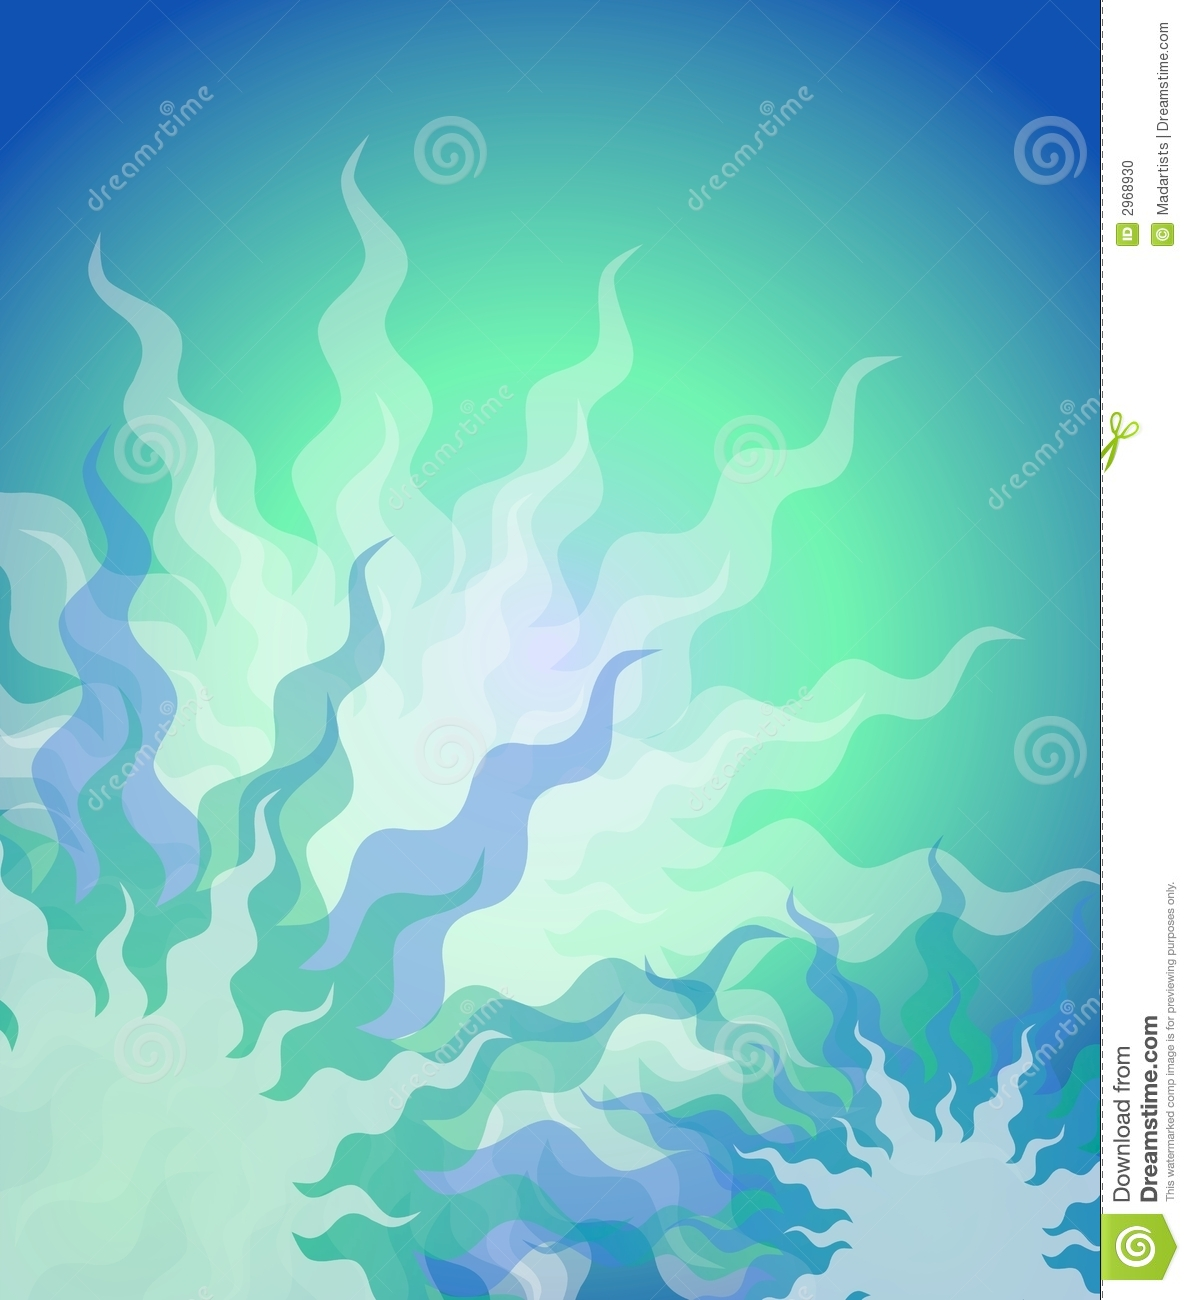 Light aqua background